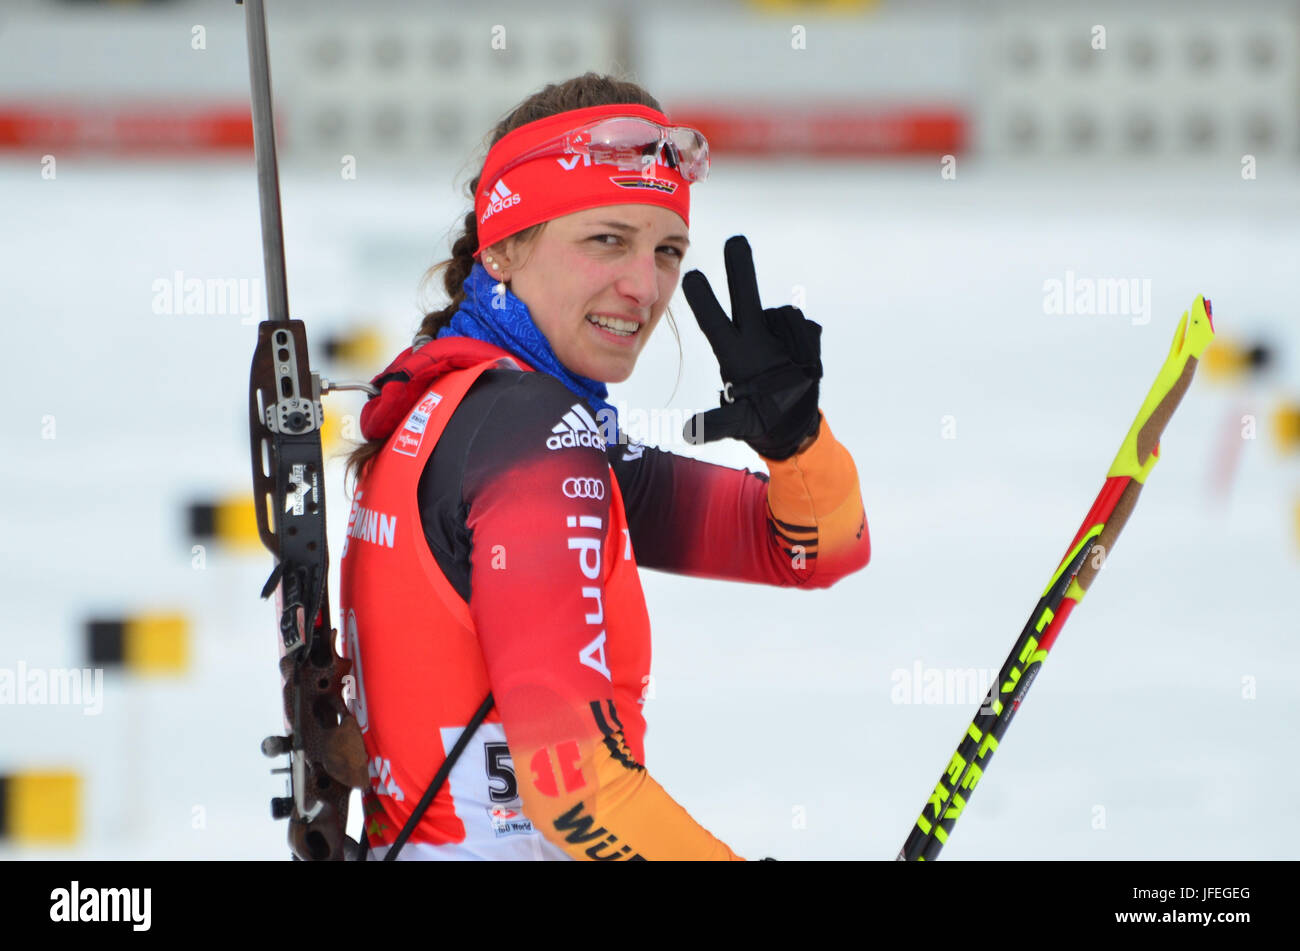 Winter sports, biathlon, world cup, Antholz, shooting range, Vanessa Hinz, GER - Stock Image